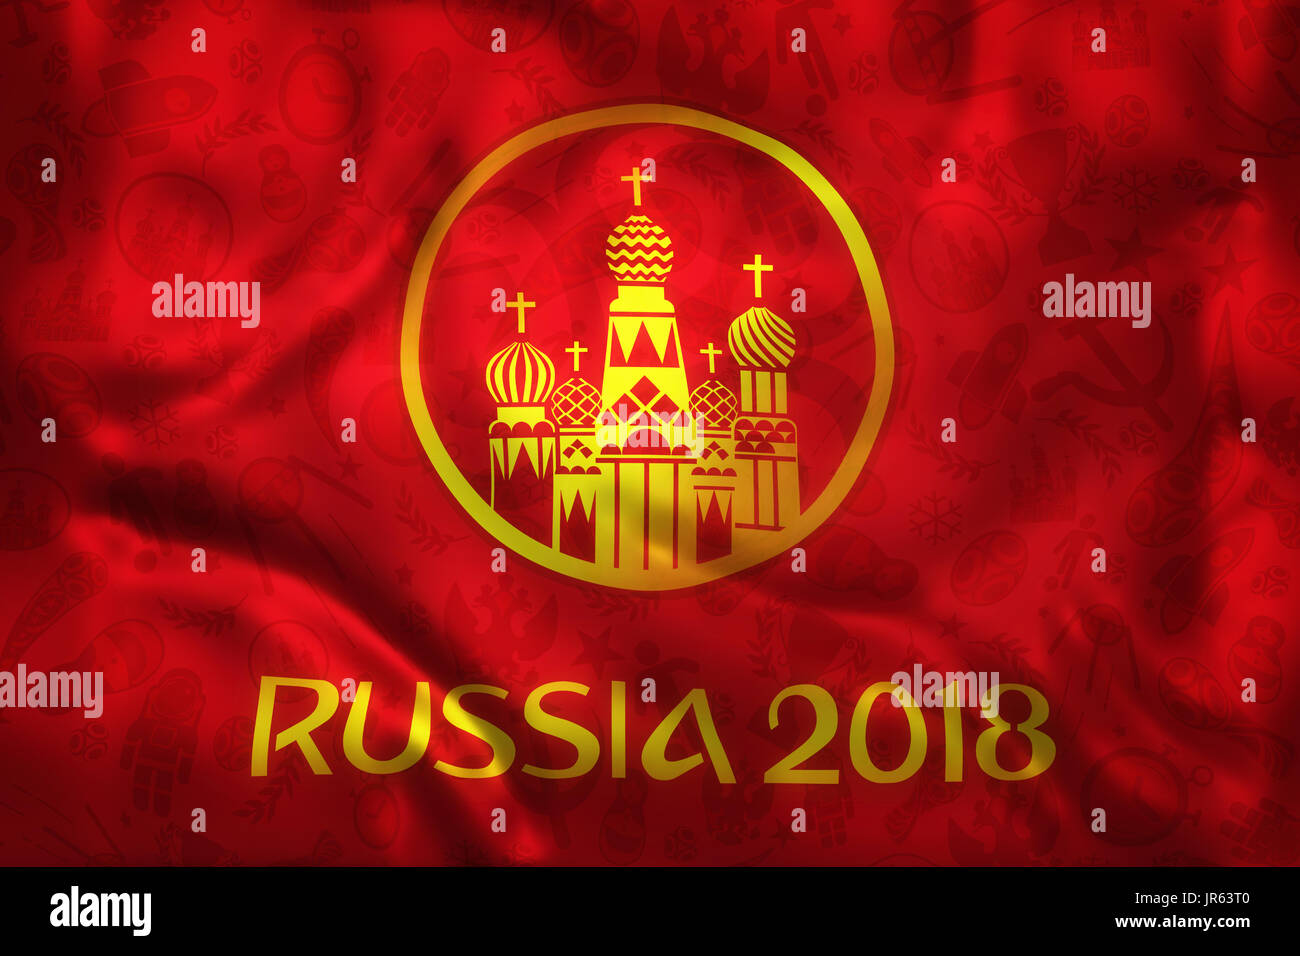 World  Football 2018 Russia Tournament Symbal on a Red Wrinkled Flag - Stock Image